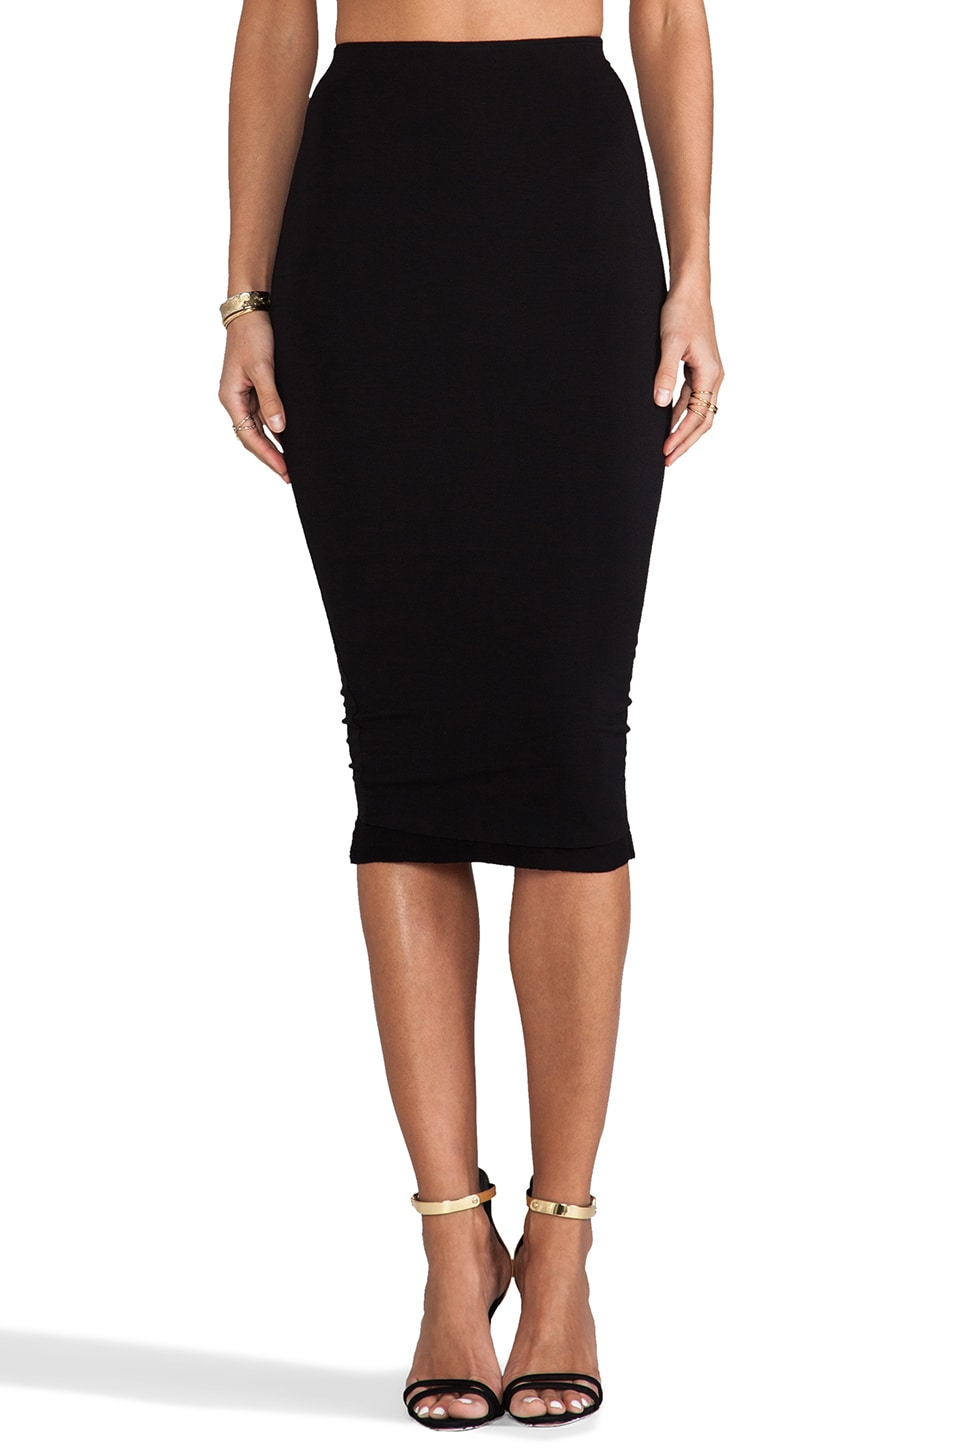 Bailey 44 Shirley Skirt in Black